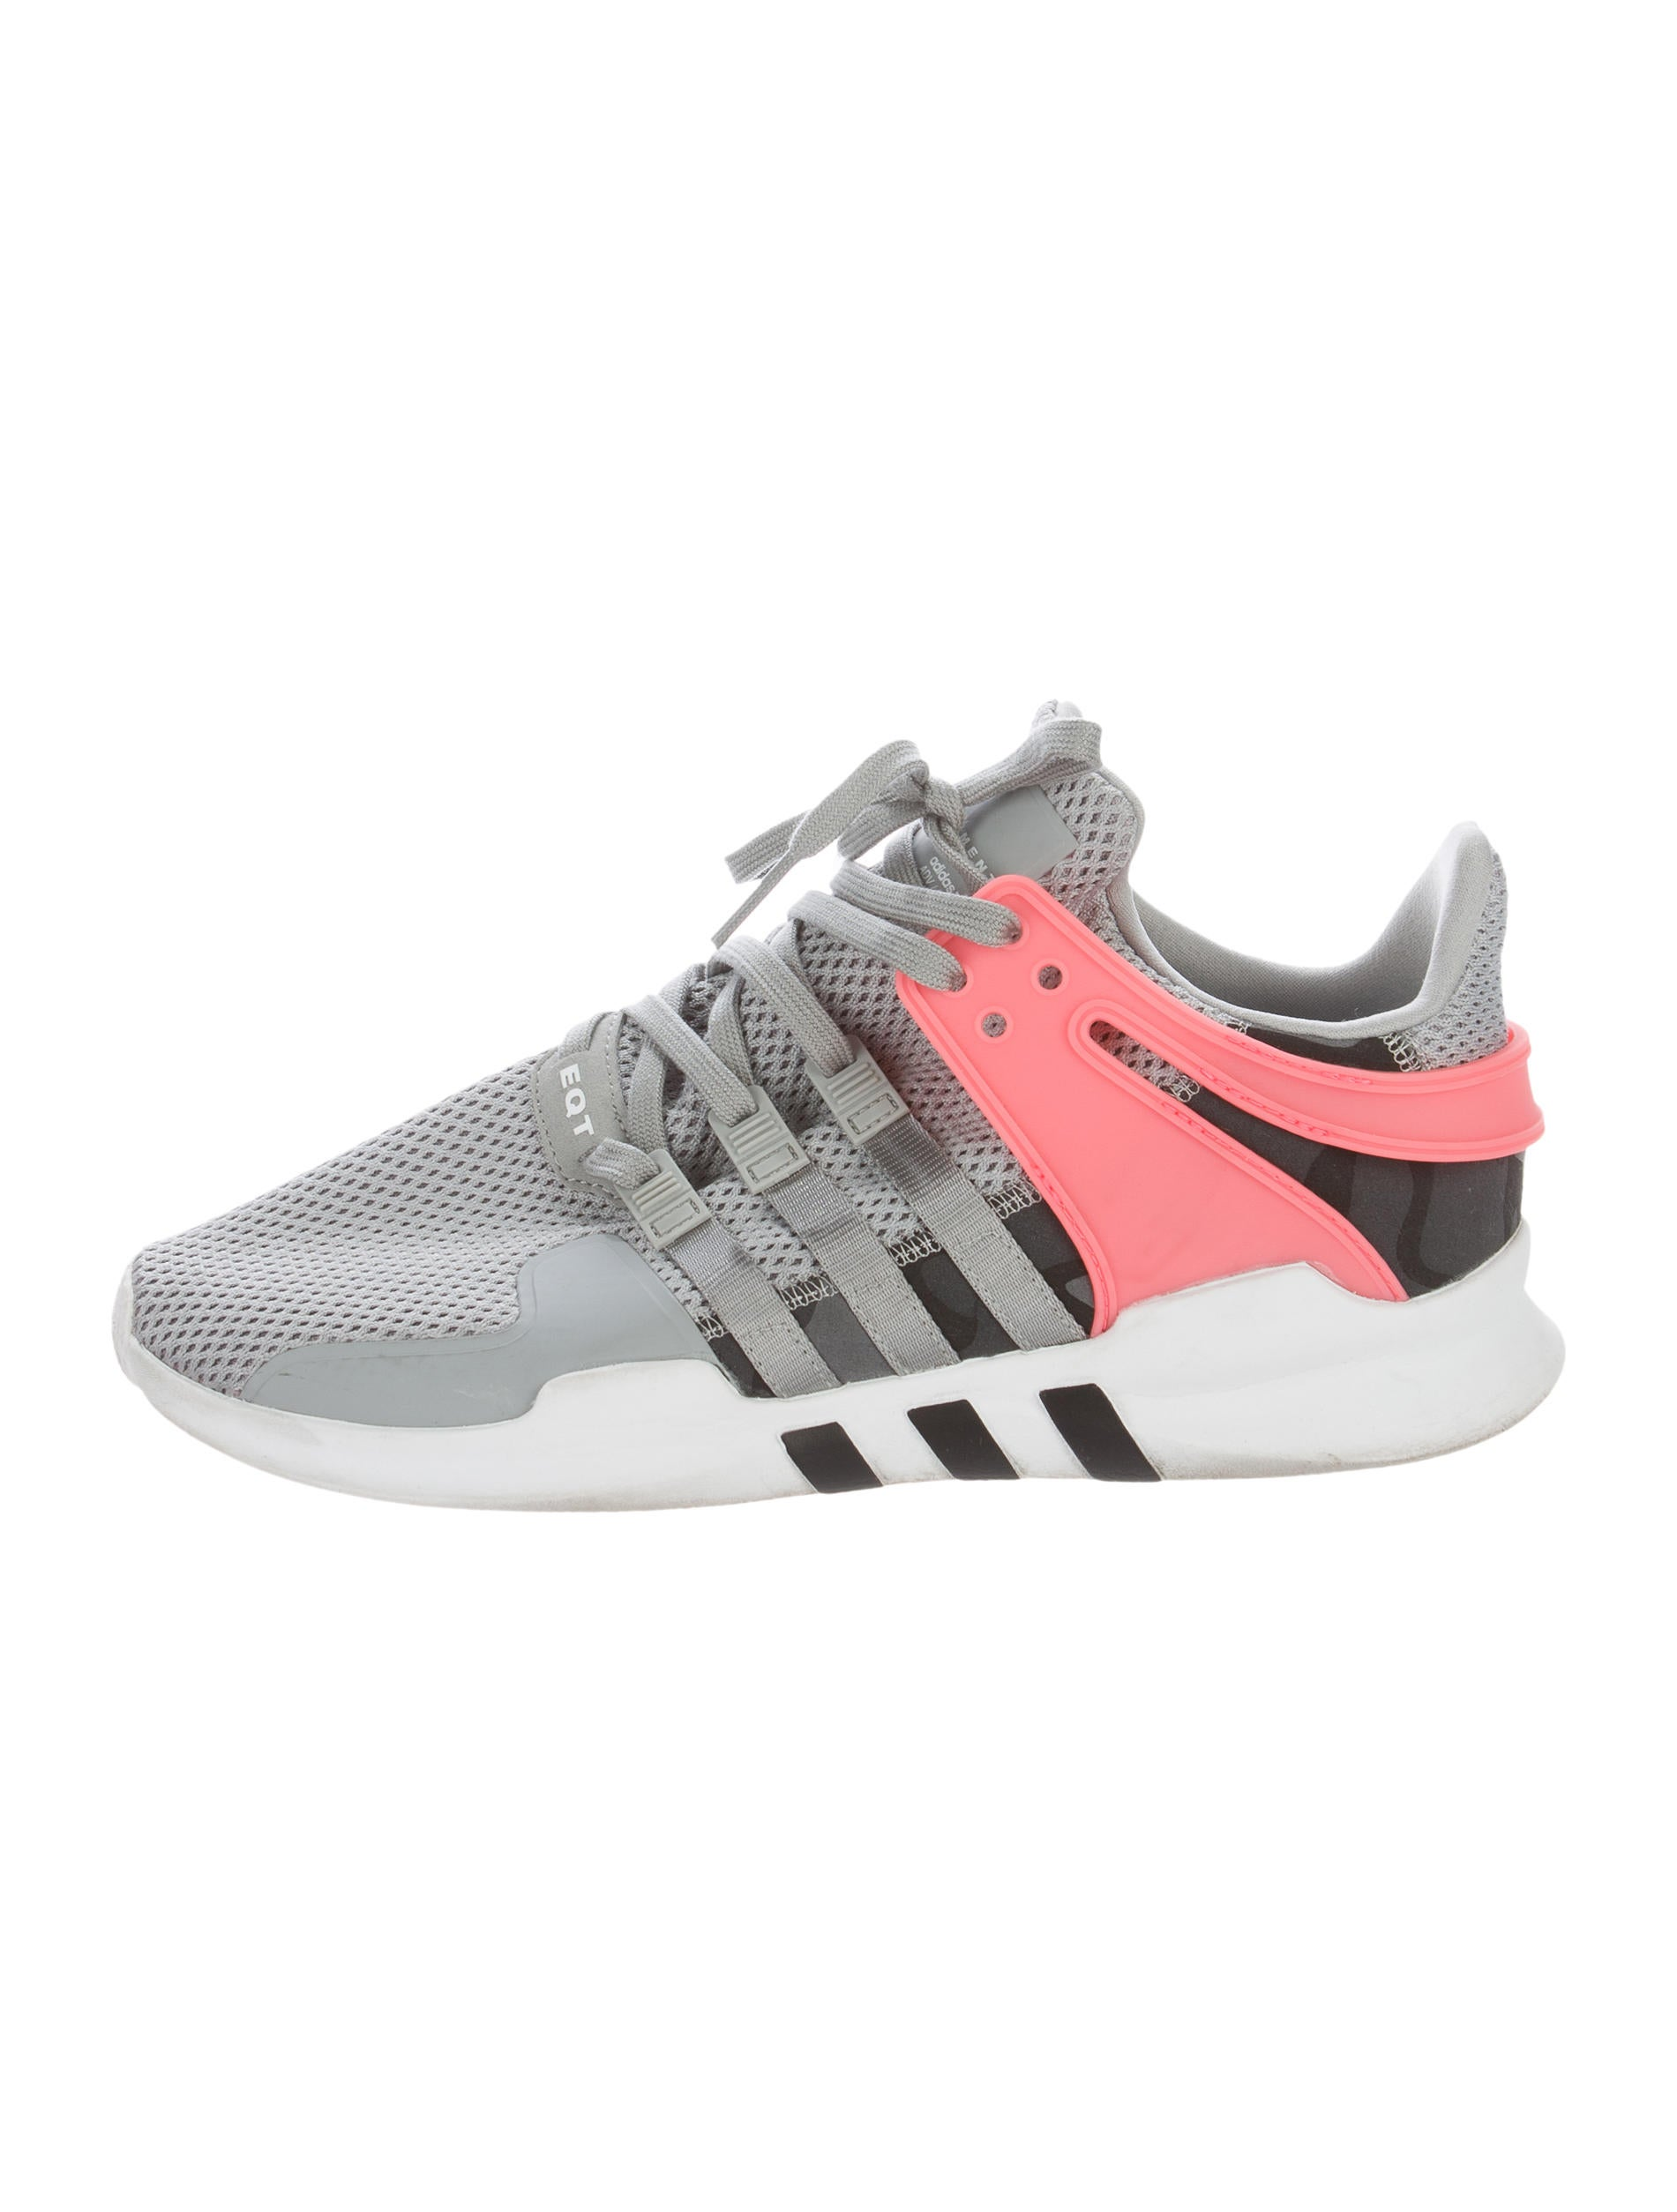 Round Kitchen Tables Adidas Eqt Support Sneakers Shoes W2ads20316 The